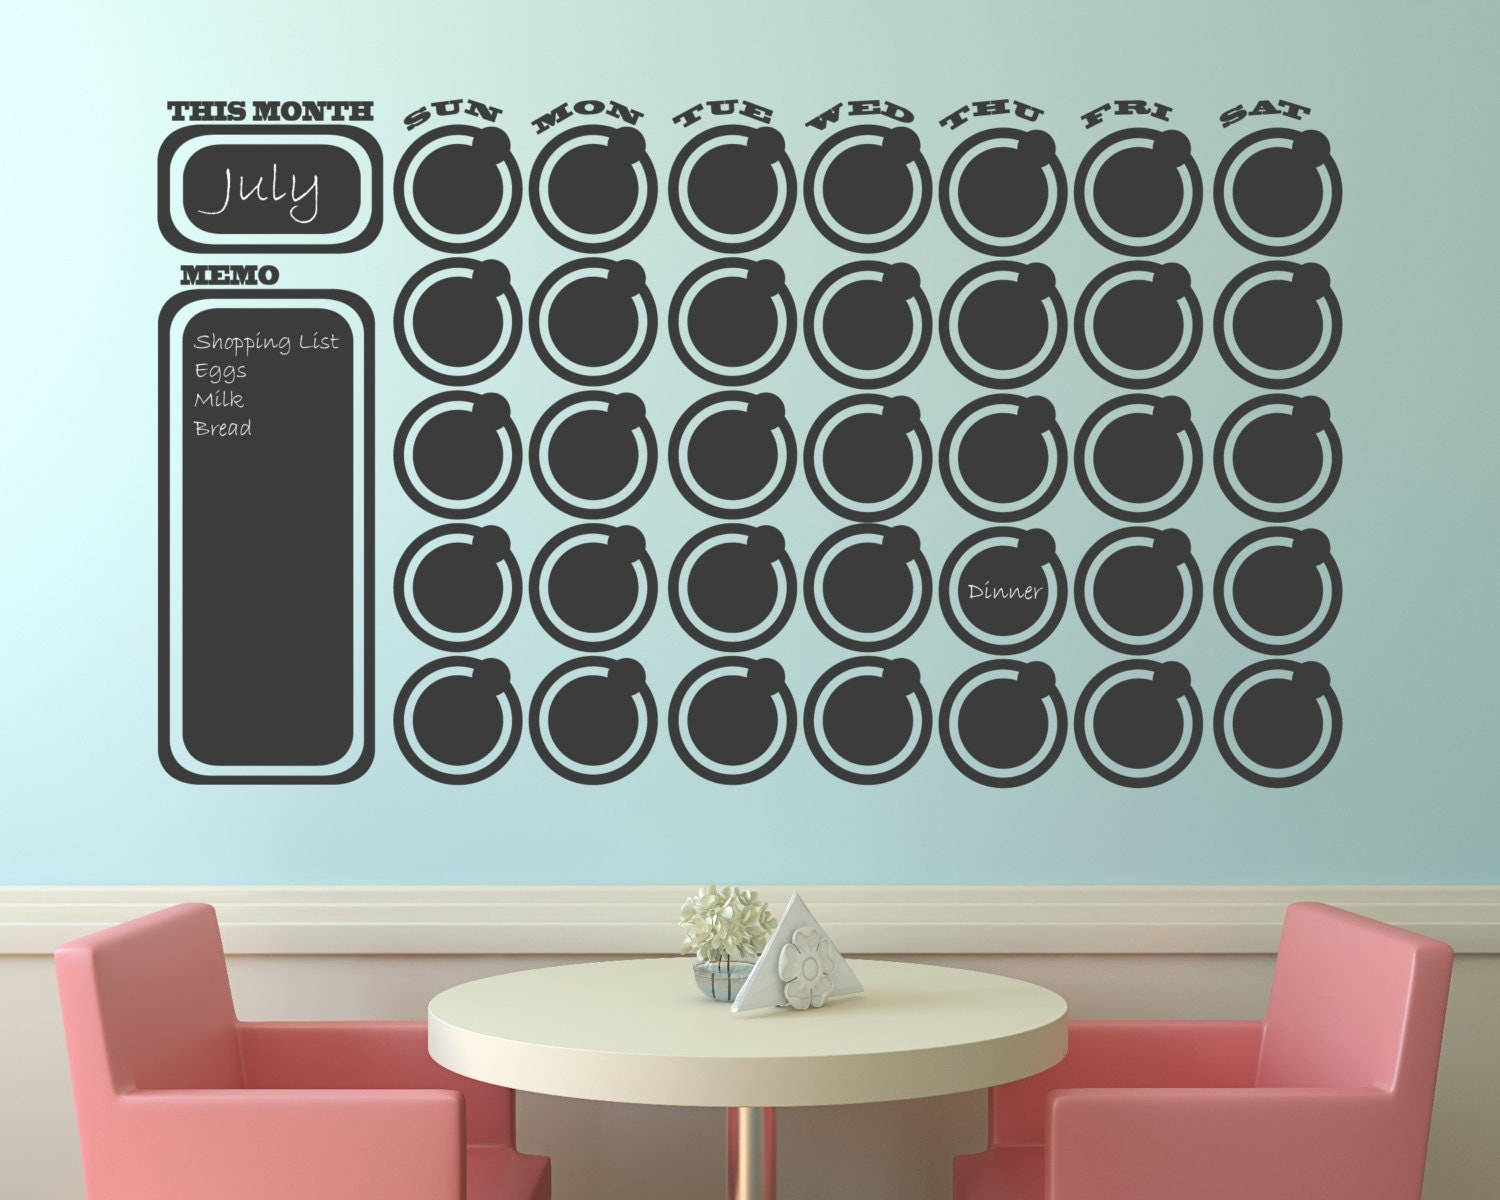 Chalkboard wall decal calendar wall decal memo with free chalk zoom amipublicfo Images